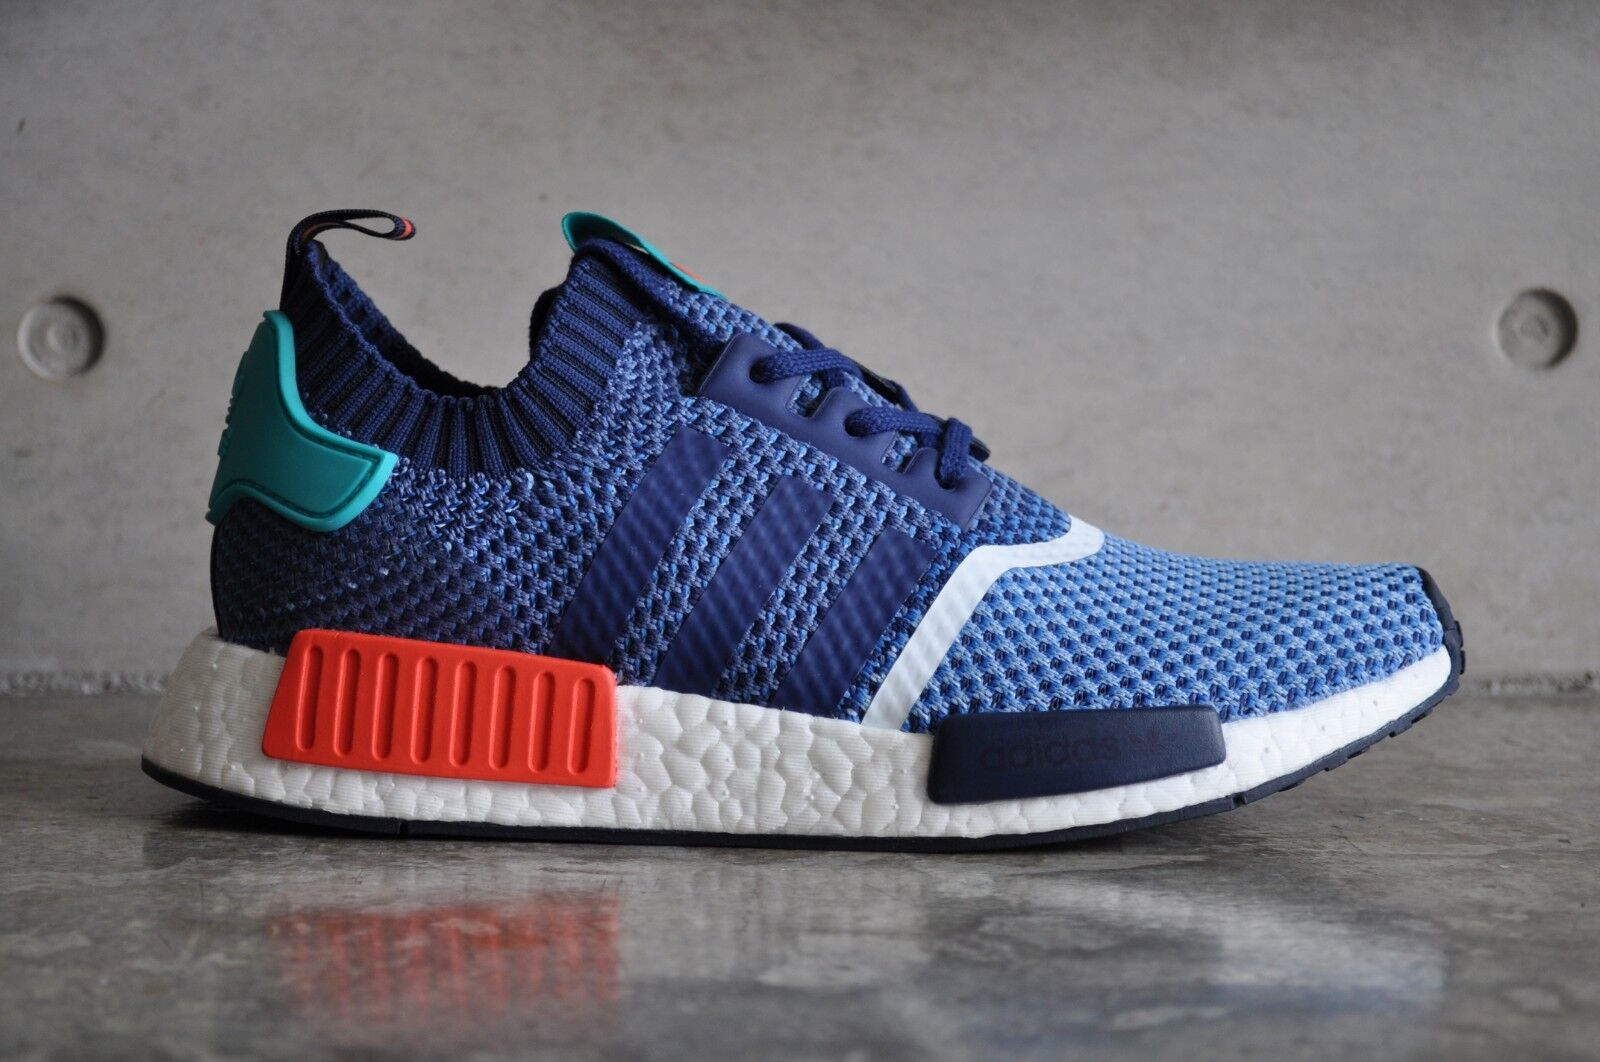 Adidas NMD R1 Primeknit  Packers  - bluee Turquoise-Red 7.5 UK 41 1 3 EUR 8 US